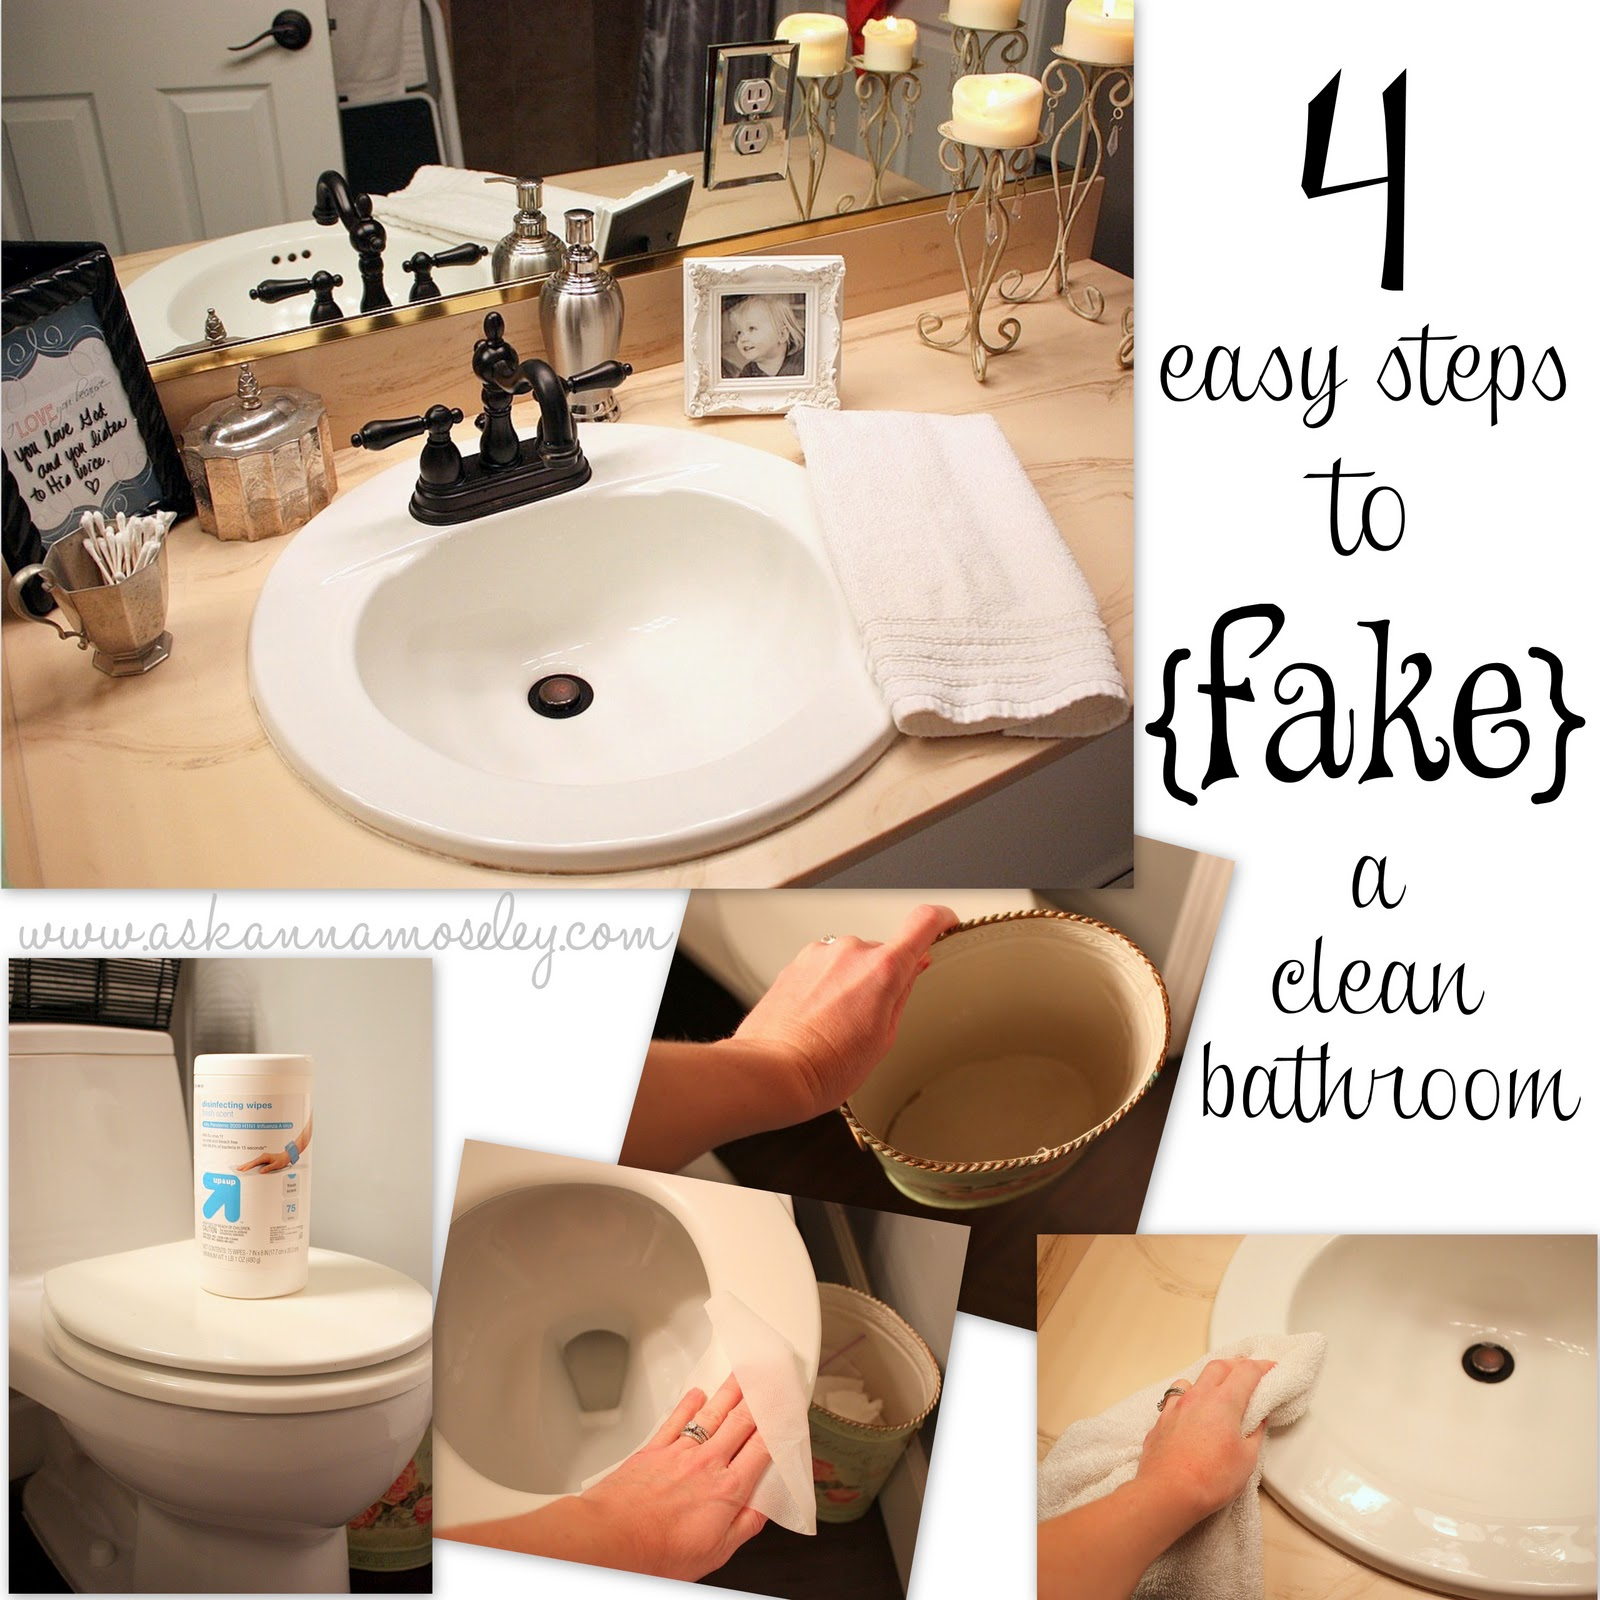 How to fake a clean bathroom by my guest anna organizing for How often to clean bathroom